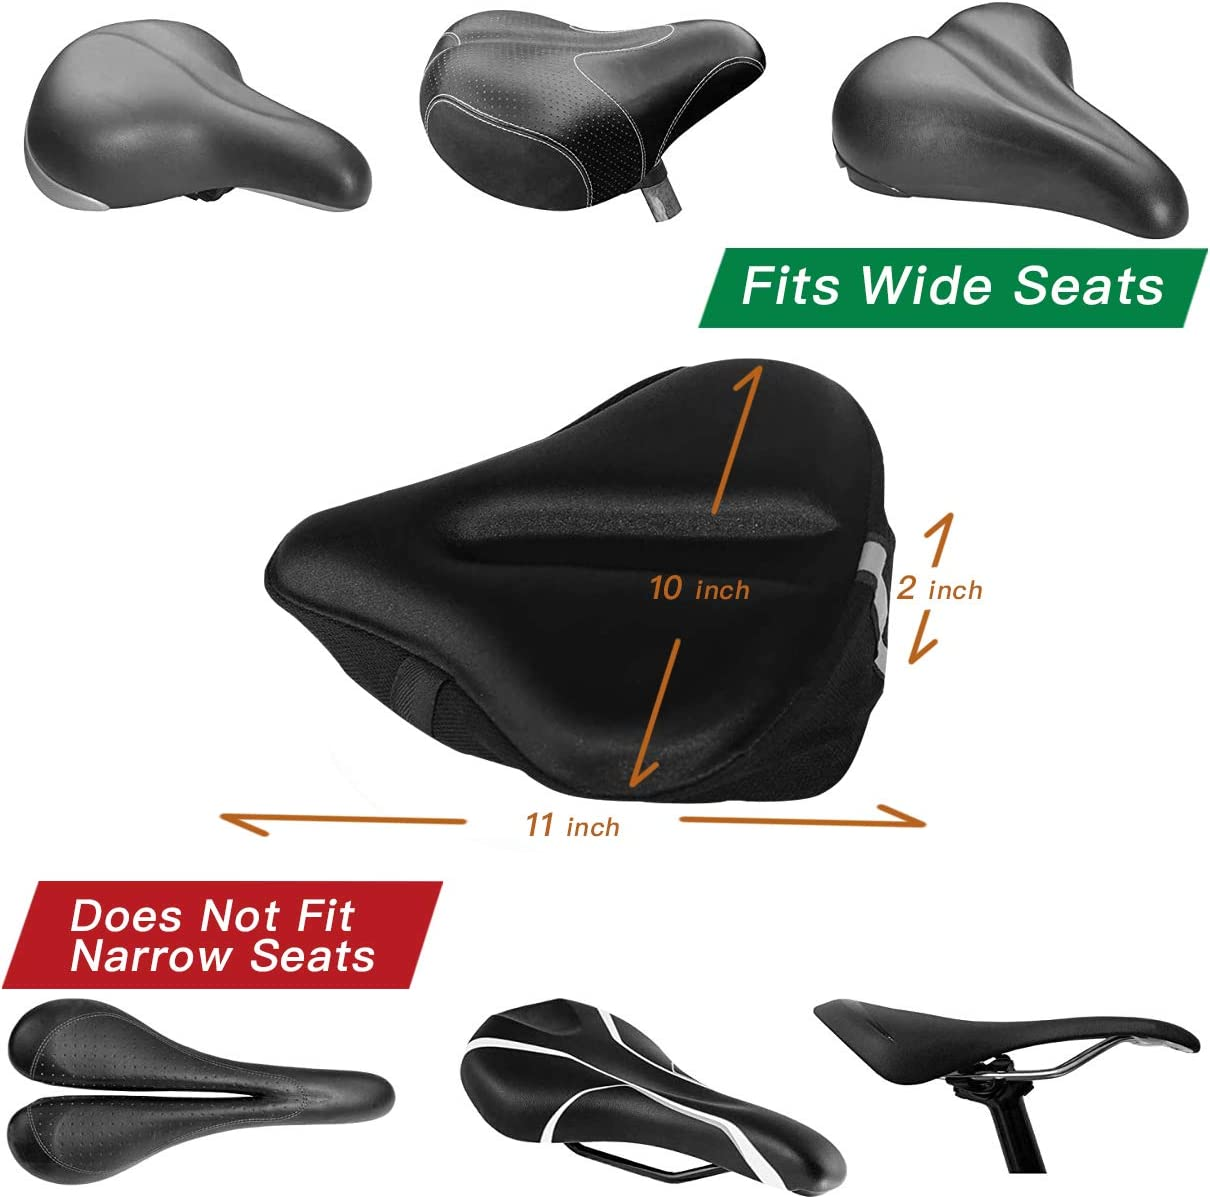 Spinning with Waterpoof Cover Xipeel Memory Foam Bike Seat Cover Extra Soft Large Wide Bike Seat Cushion for Women Men Comfortable Exercise Bicycle Saddle Cushion Fits Cruiser and Stationary Bikes